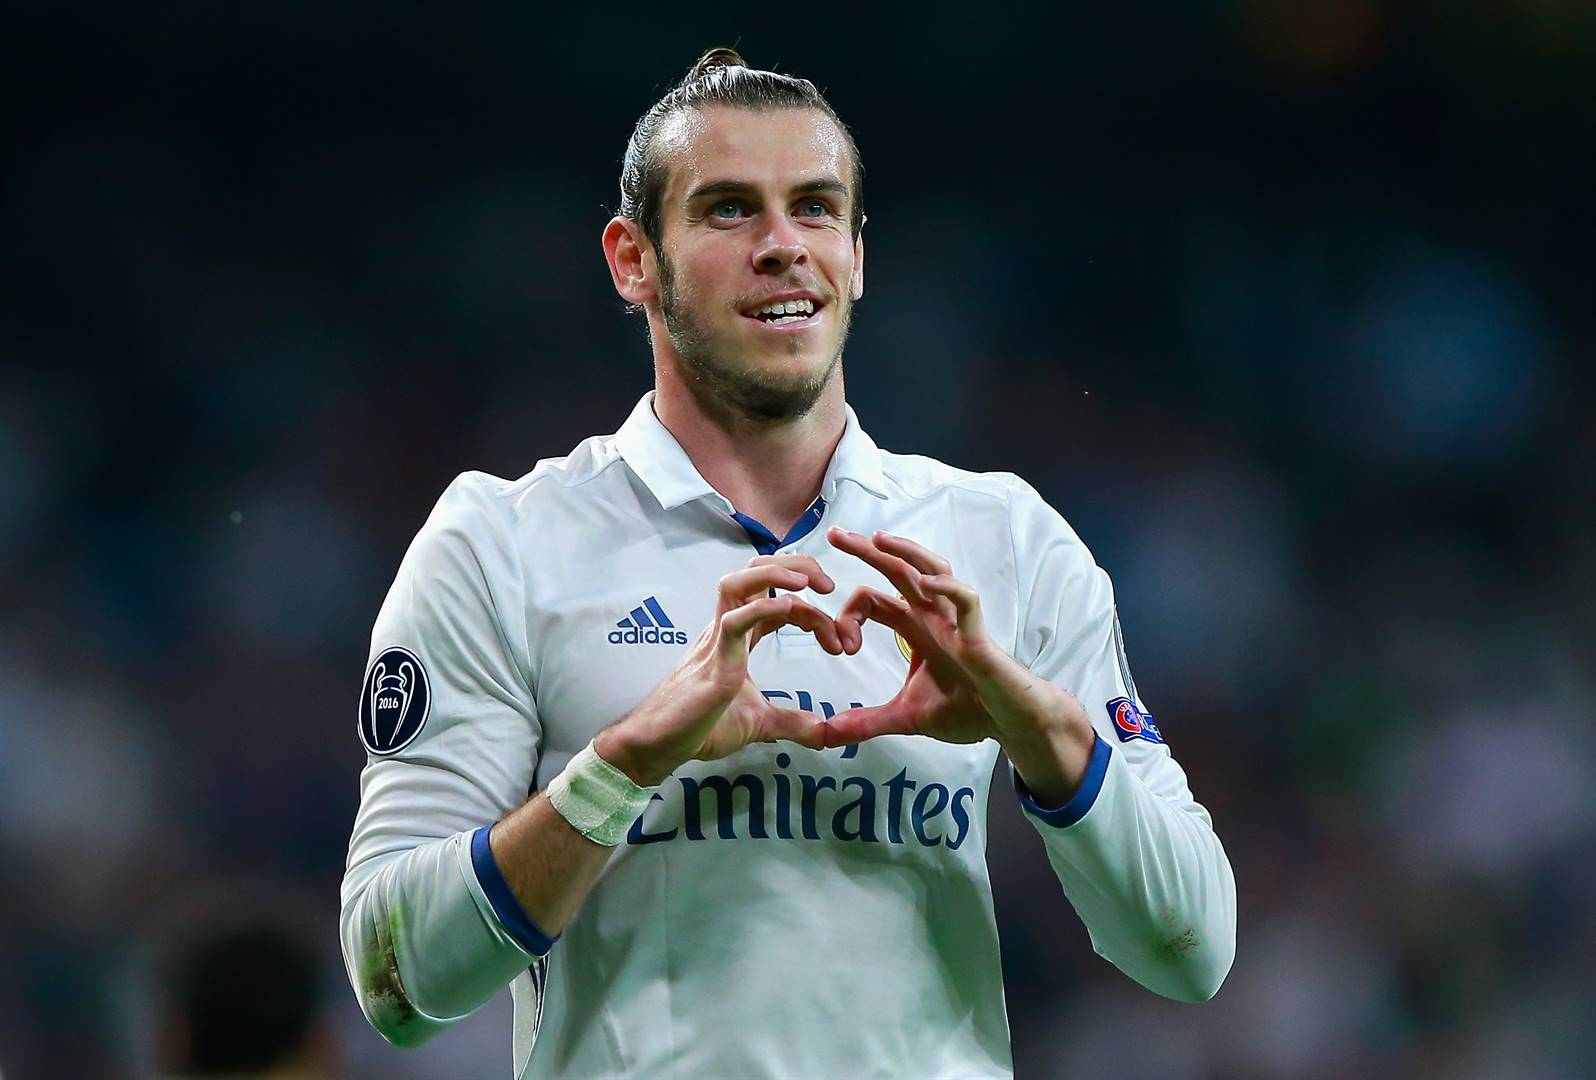 Gareth Bale could leave Real Madrid for a sensational return to his old club Tottenham Hotspur Picture: Gonzalo Arroyo Moreno / Getty Images